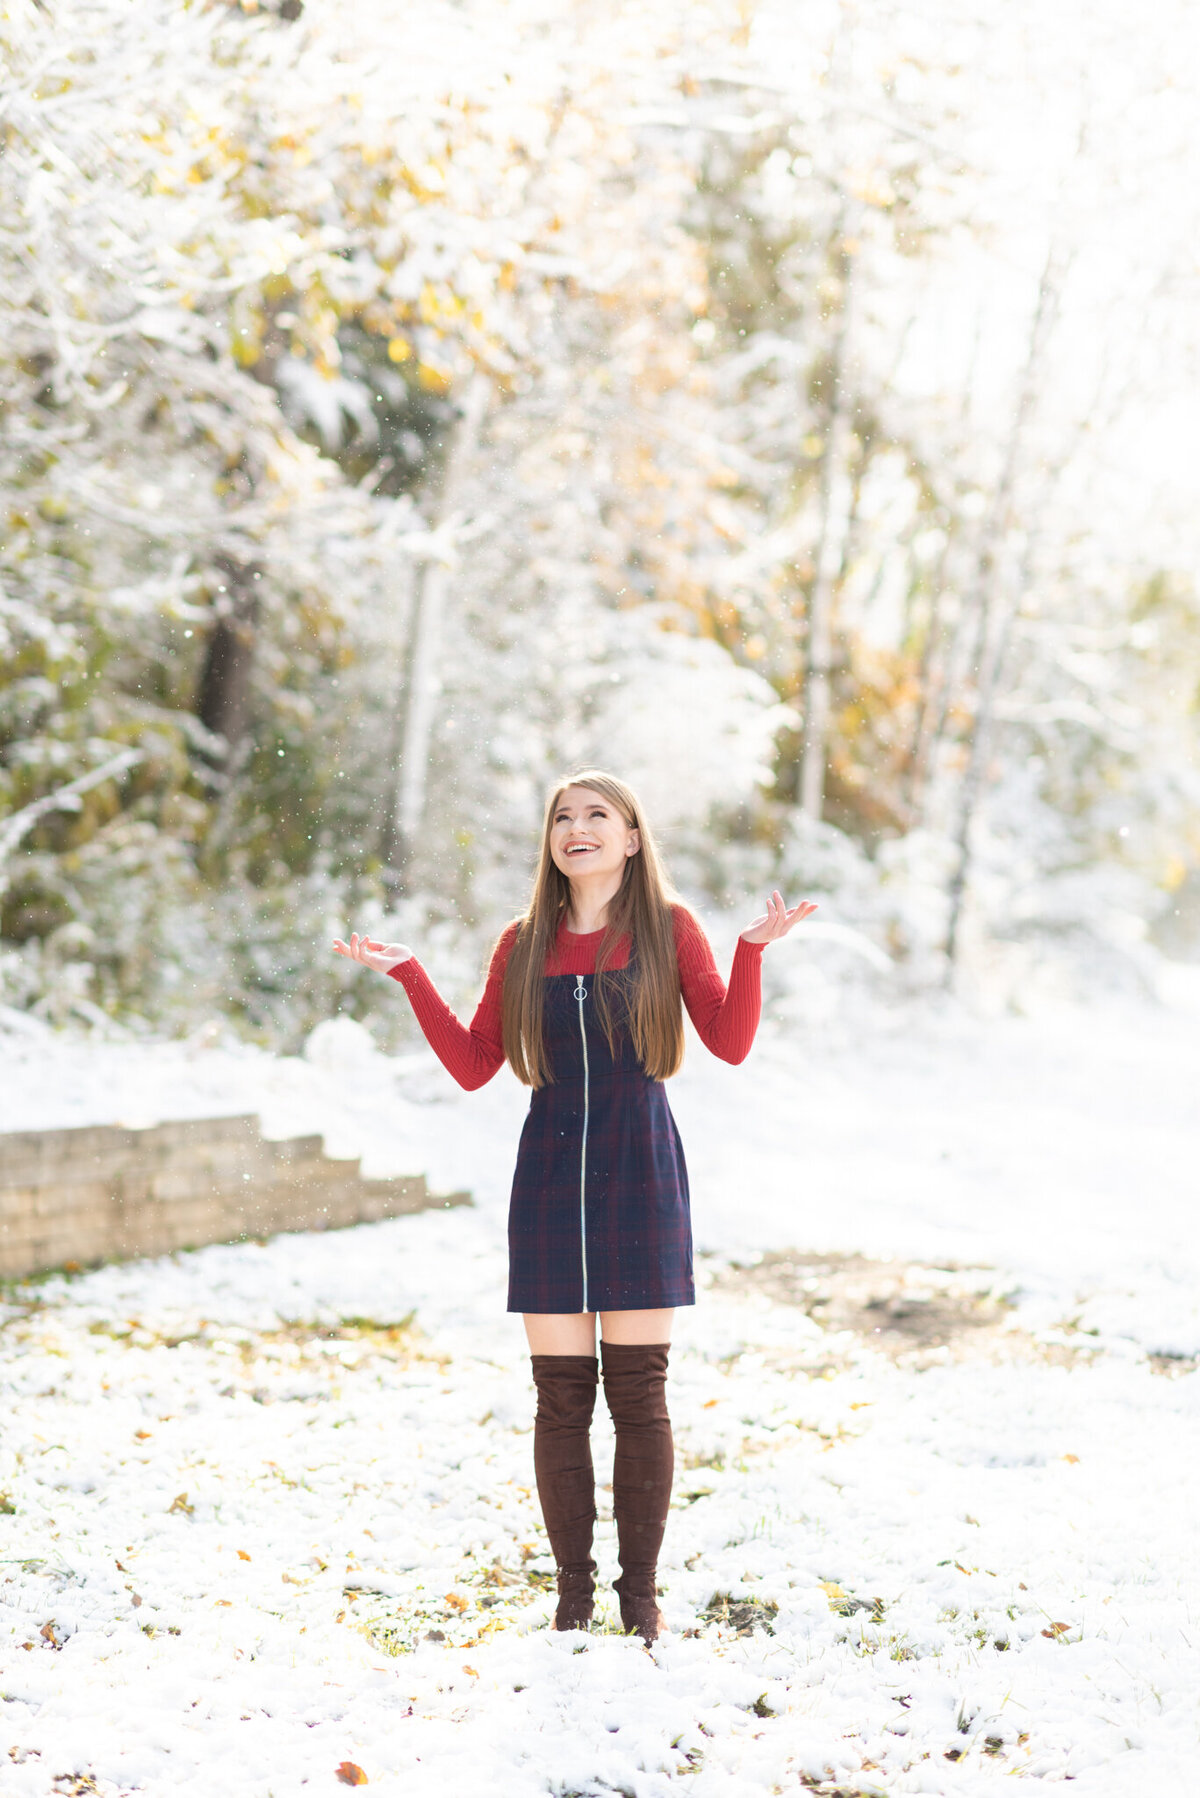 Autumn-fall-Winter-high-school-senior-Pictures-9